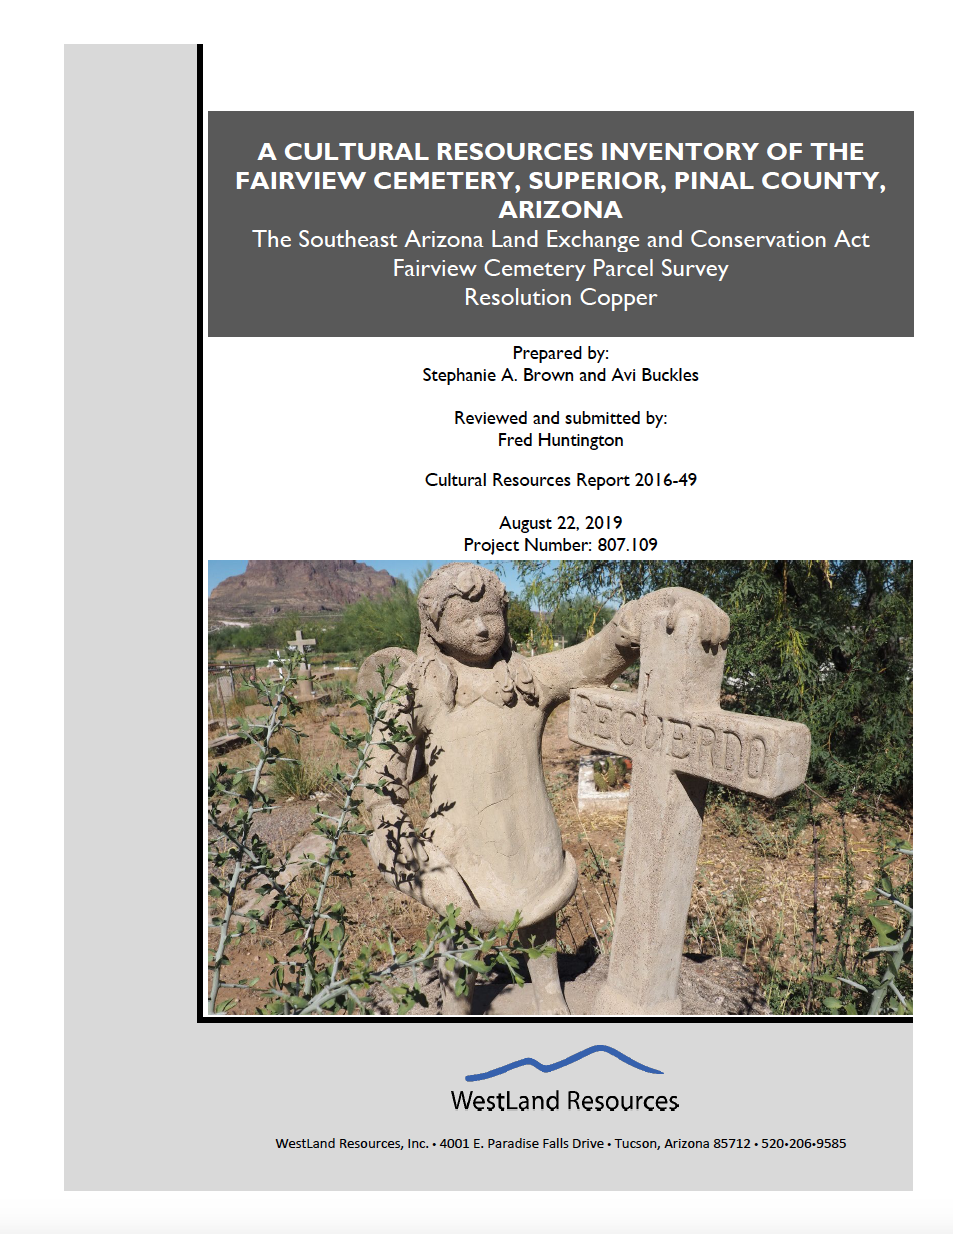 Thumbnail image of document cover: A Cultural Resources Inventory of the Fairview Cemetary, Superior, Pinal County, Arizona: The Southeast Arizona Land Exchange and Conservation Act Fairveiw Cemetary Parcel Survey, Resolution Copper